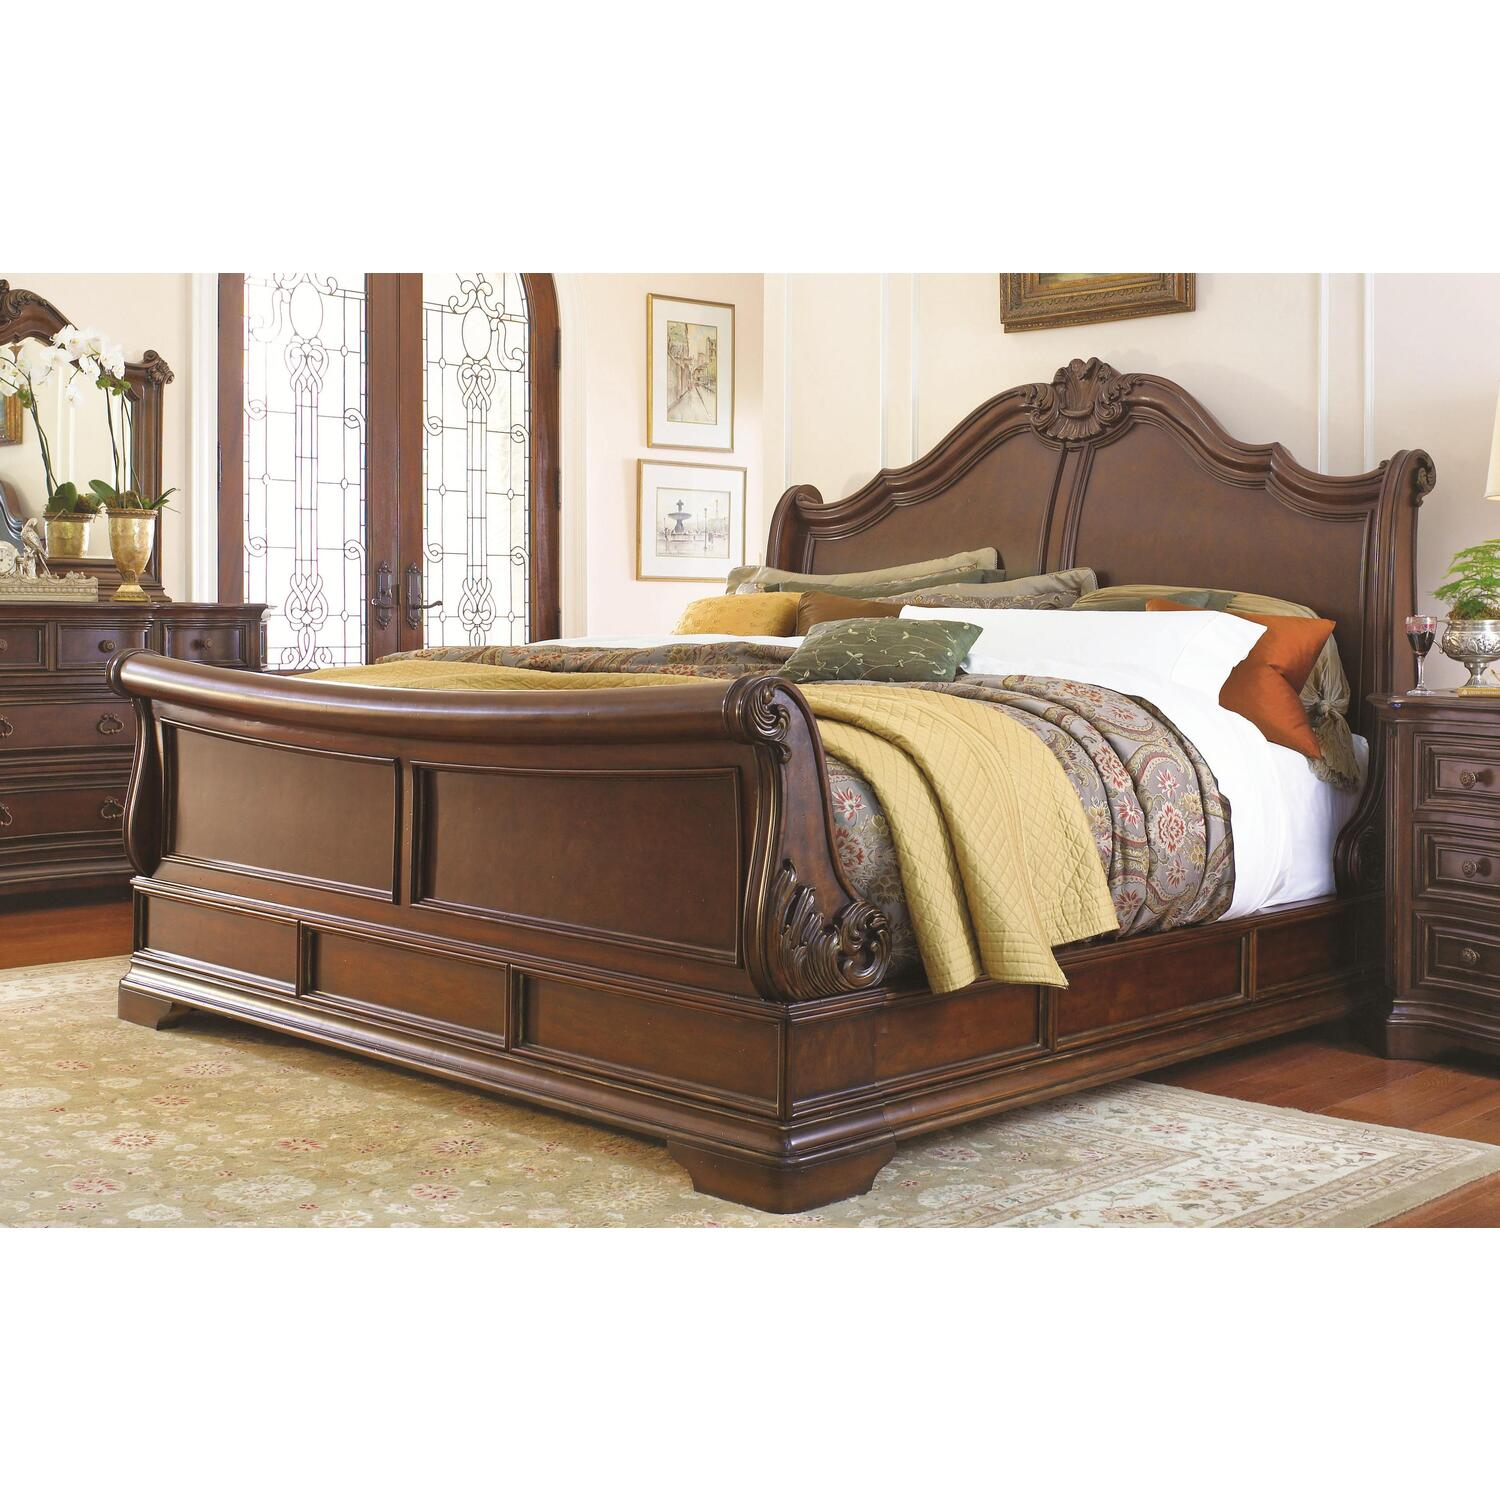 How To Build A King Sleigh Bed